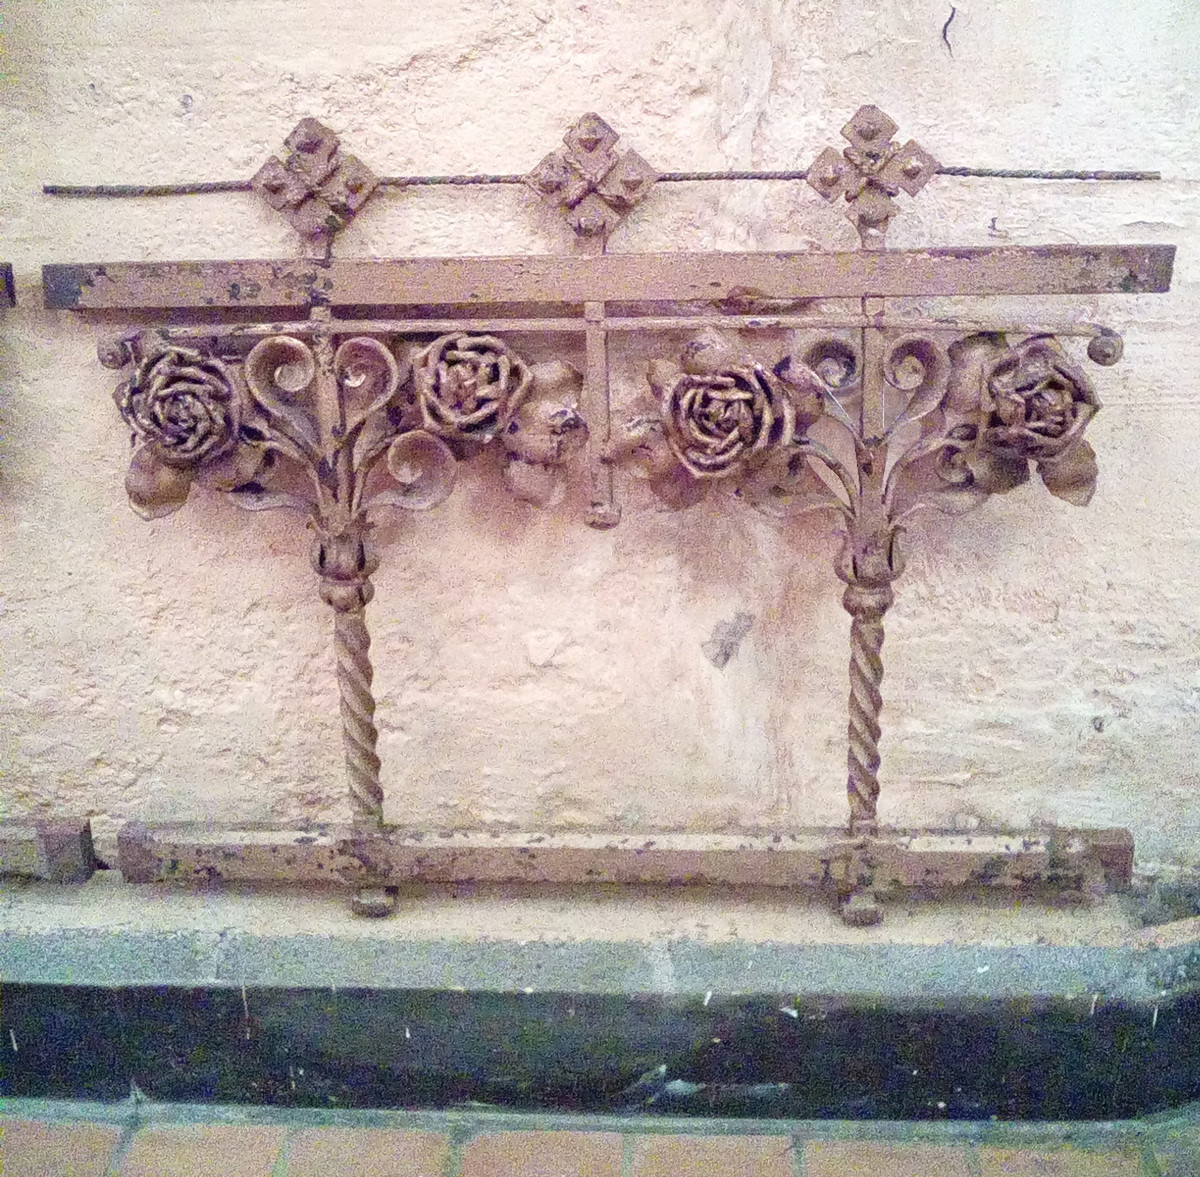 S19017A - Elaborate Wrought Iron Altar Rail Section